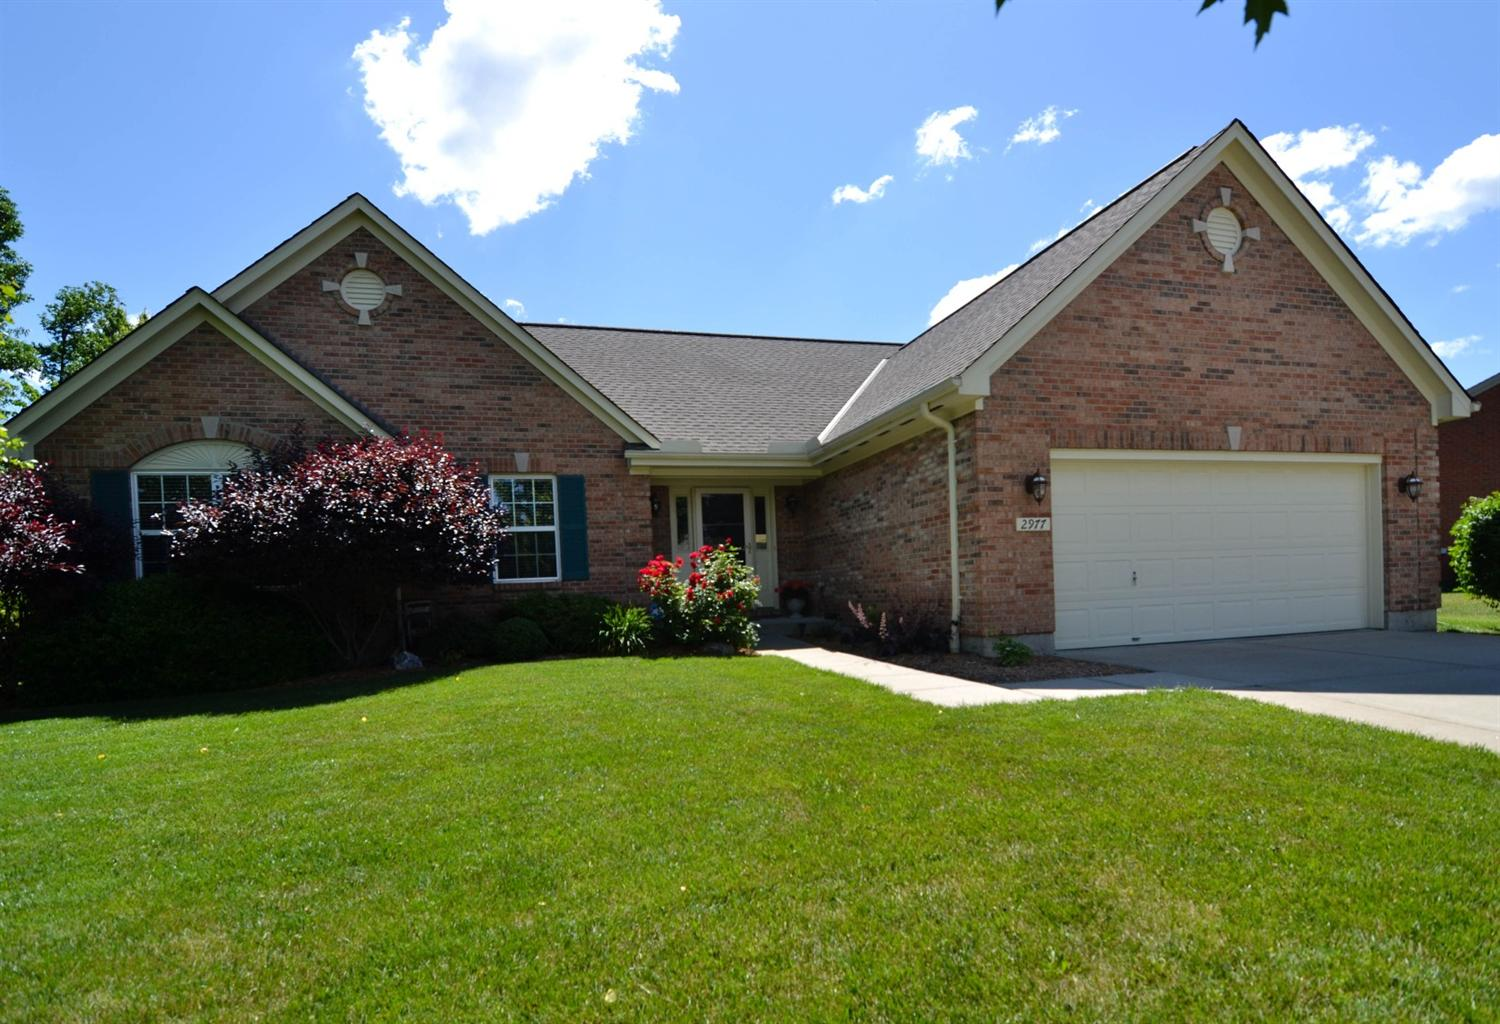 Photo 1 for 2977 Collier Ln Burlington, KY 41005